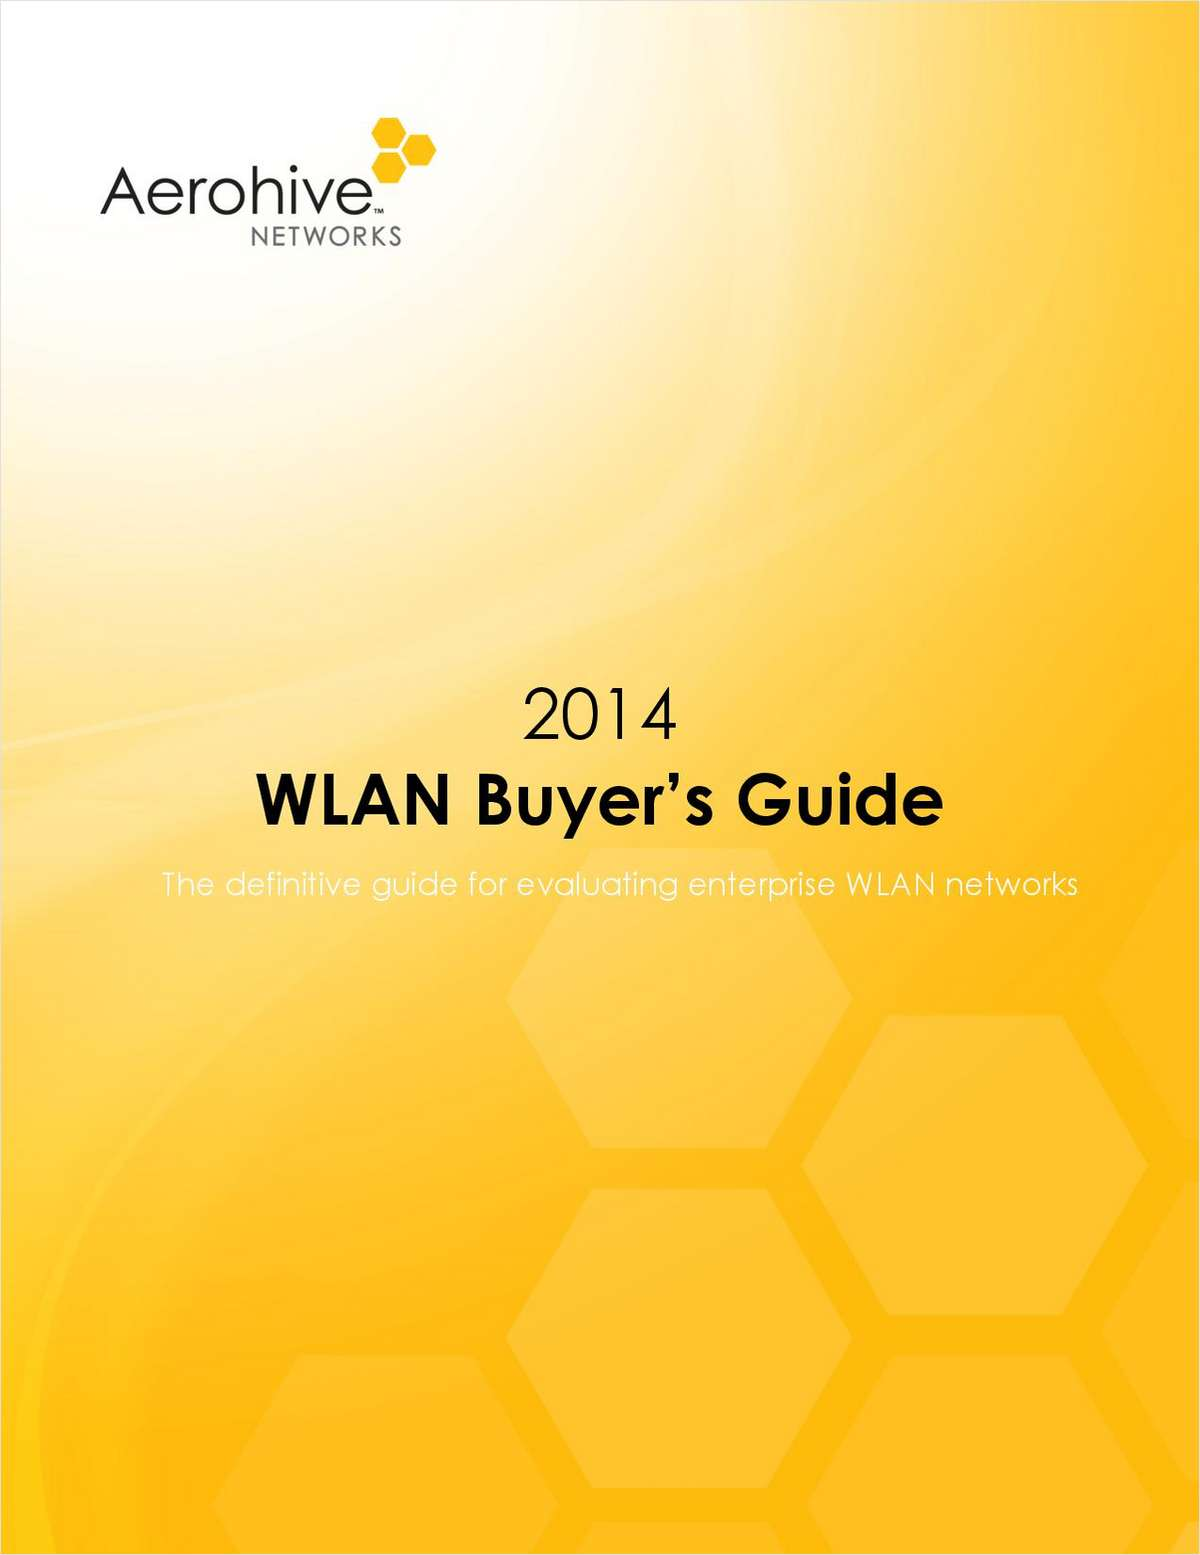 WLAN Buyer's Guide